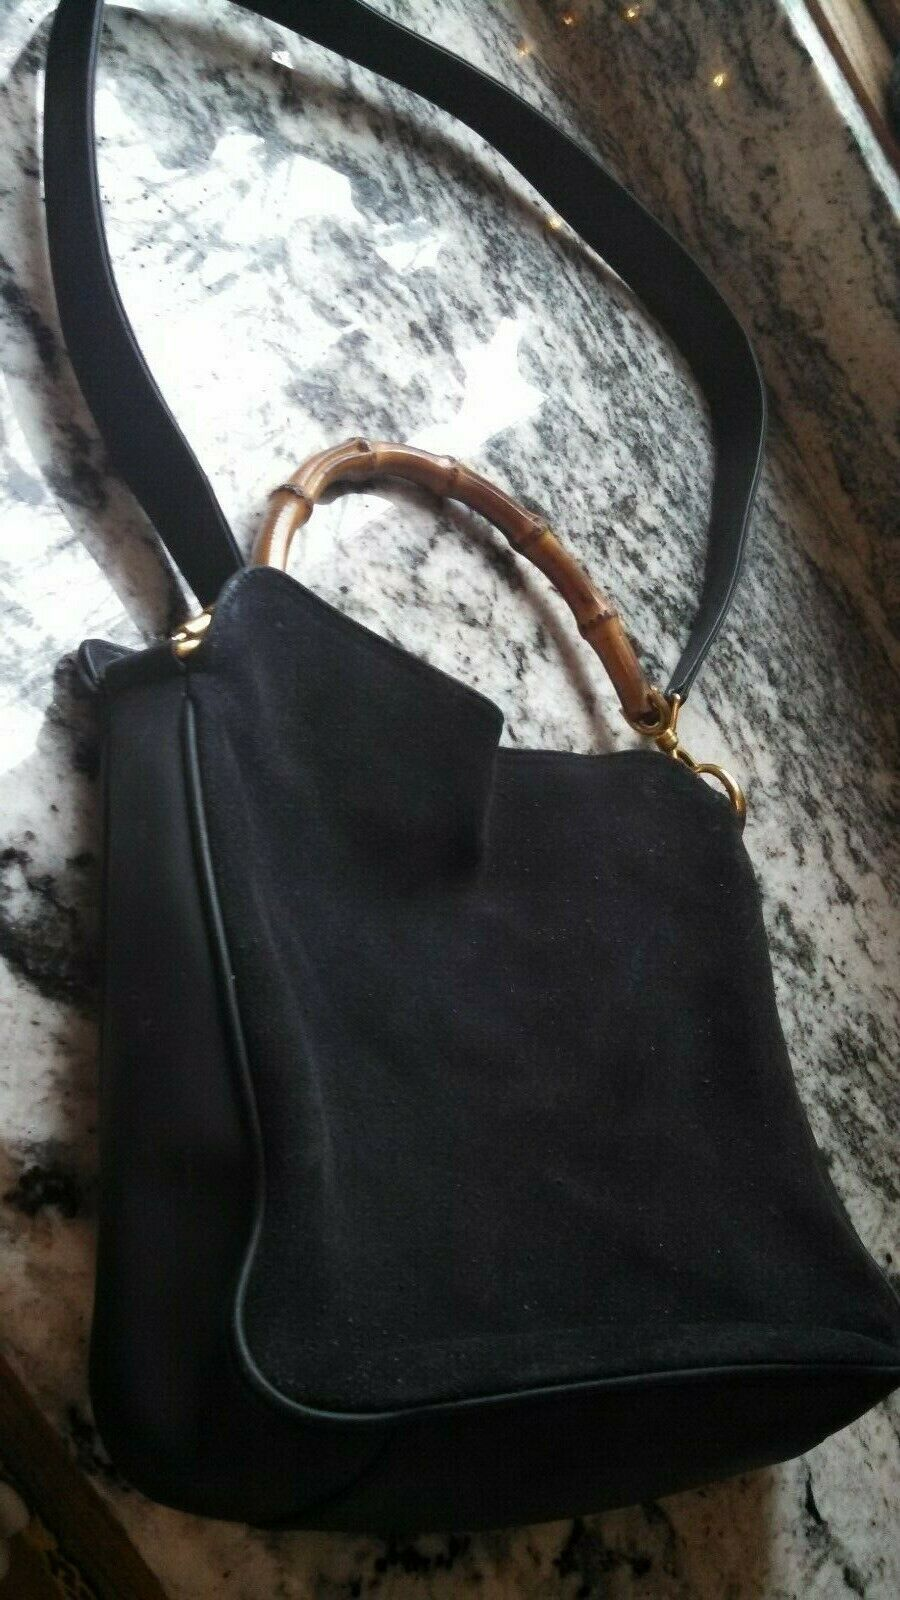 b3b943616 Details about Auth GUCCI Bamboo Classic Black Leather Handbag w ...